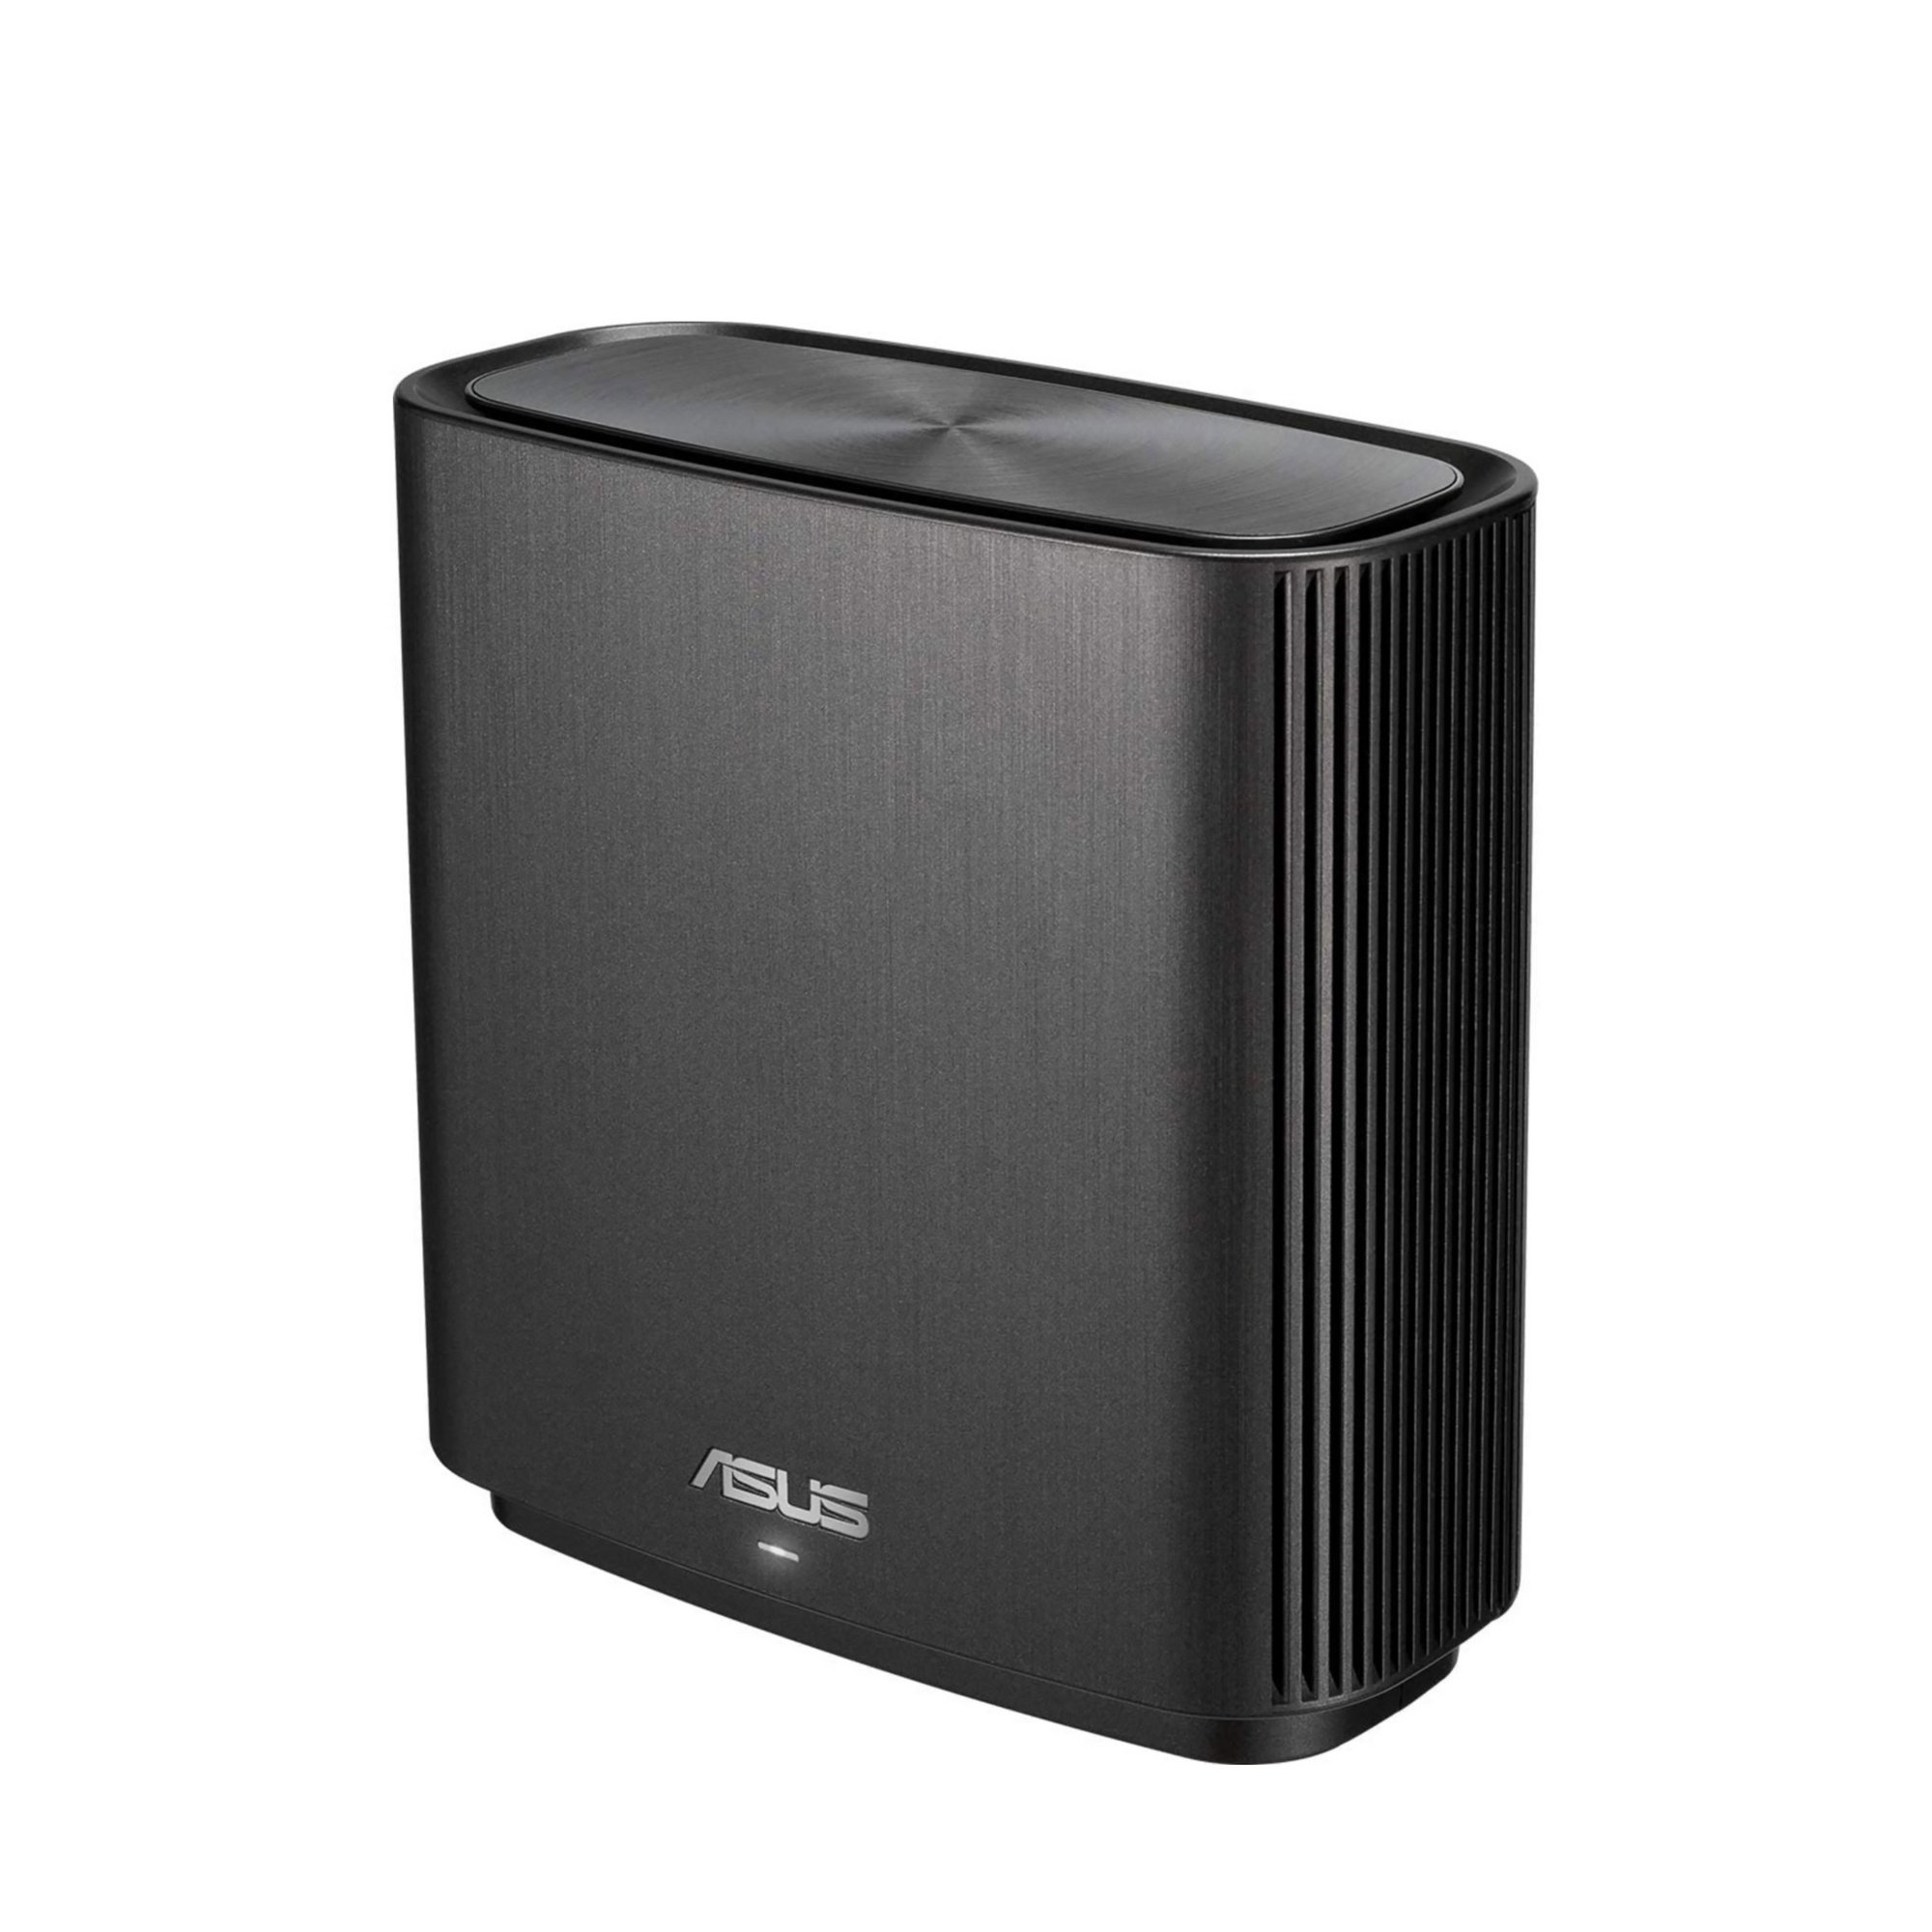 Image of ASUS ZenWifi CT8 AC3000 Tri-band Whole-Home Mesh WiFi System